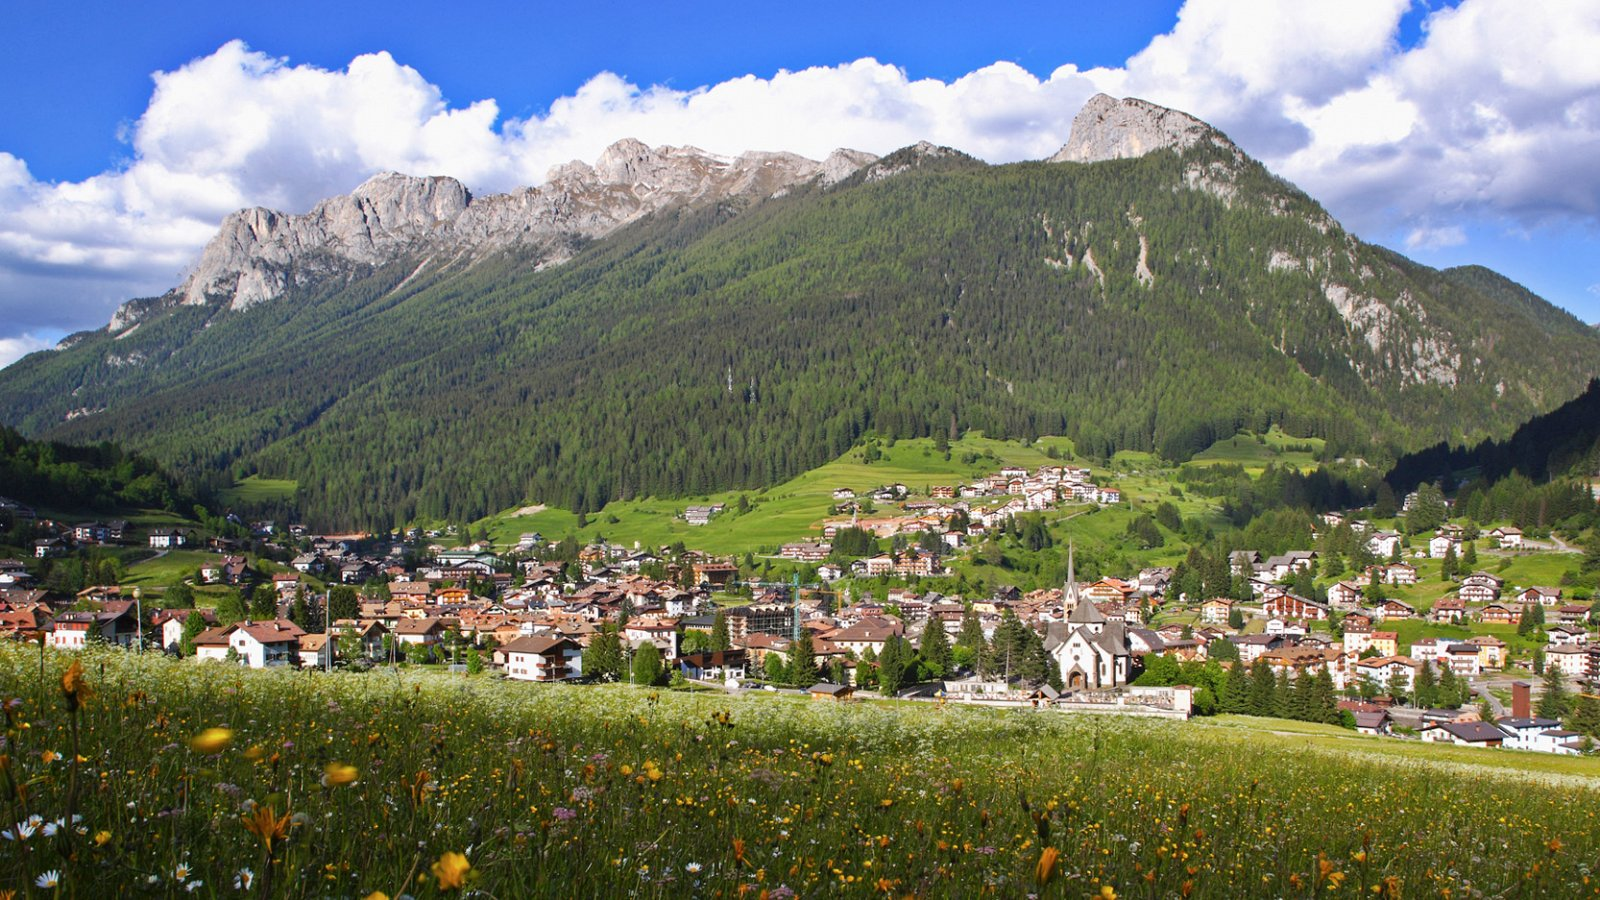 beautiful view over Moena in Trentino - Italy